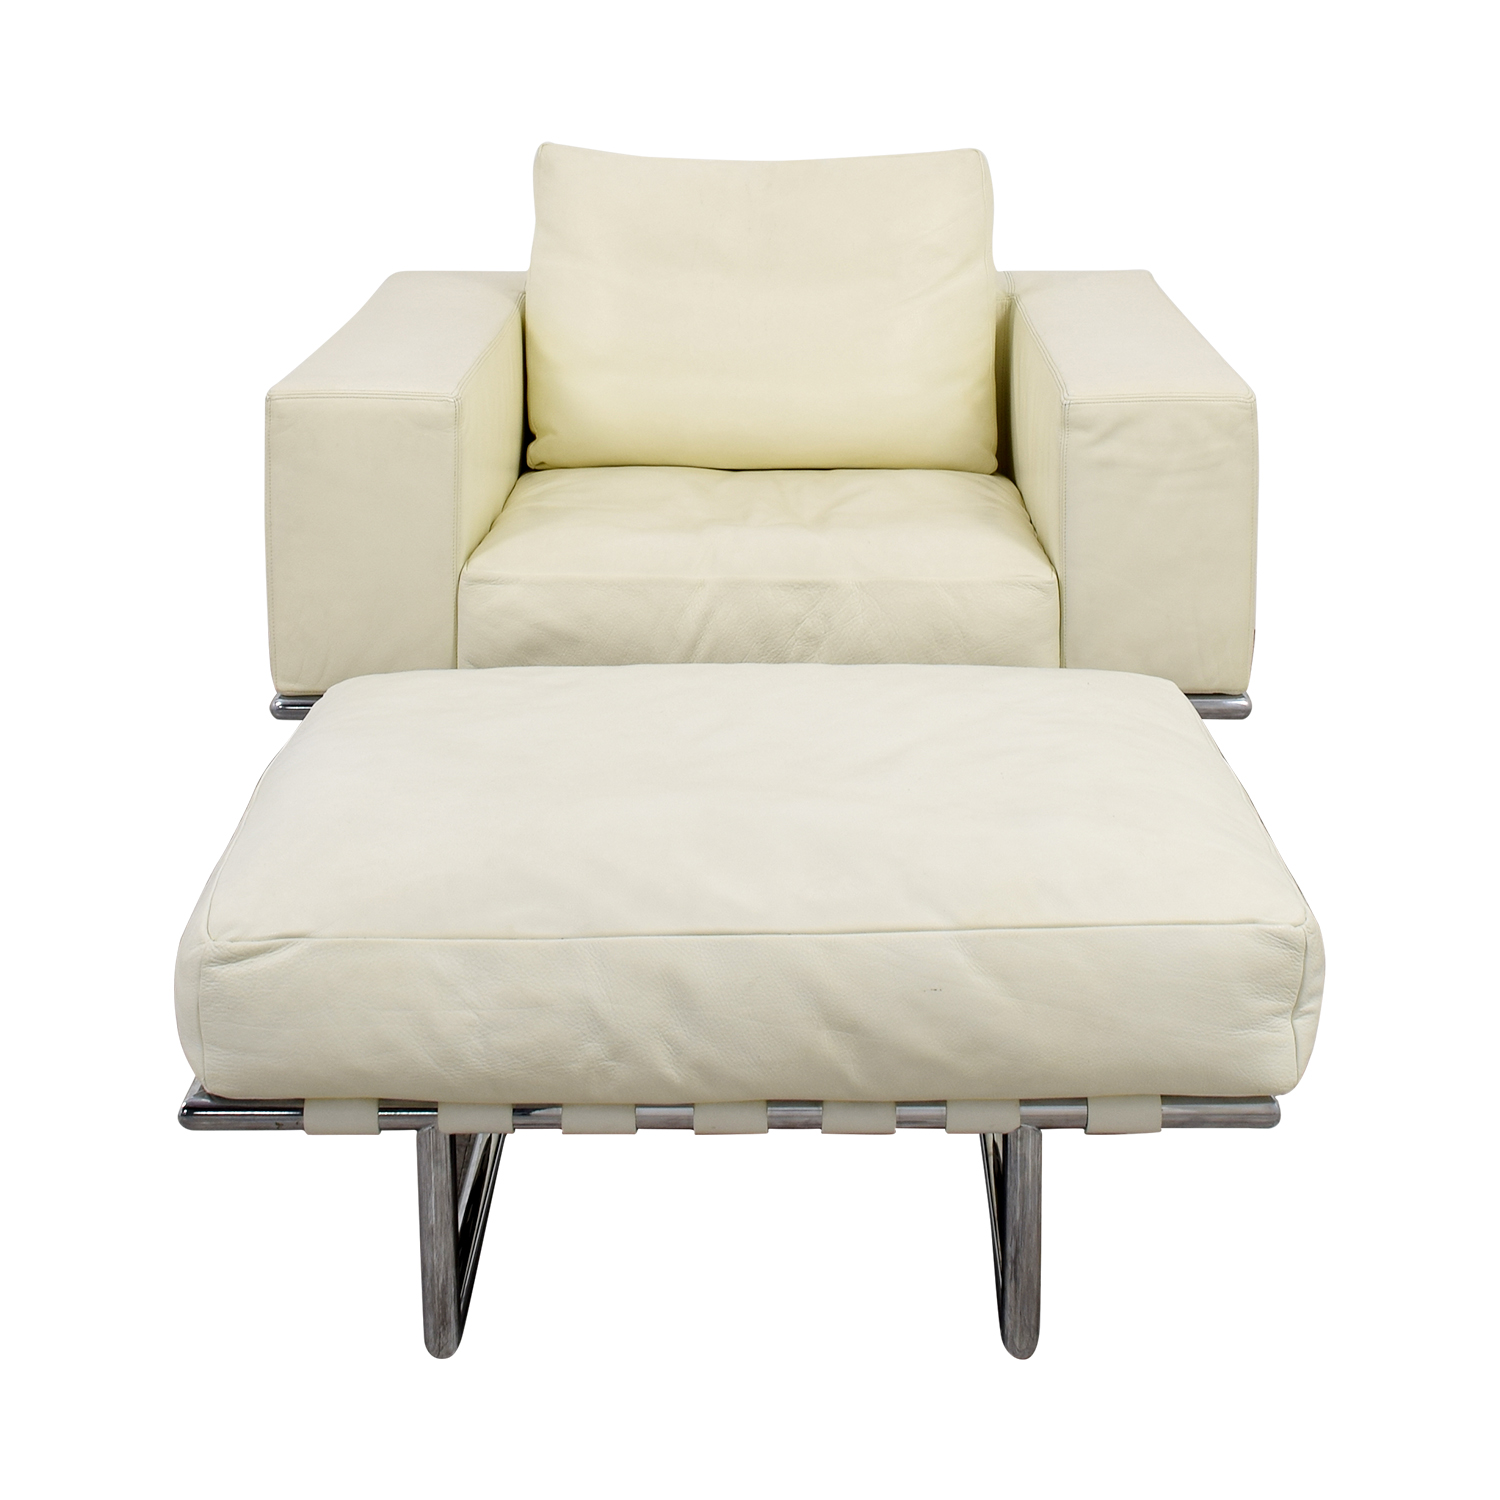 85% OFF - Moura Starr Moura Starr Italian White Leather ...